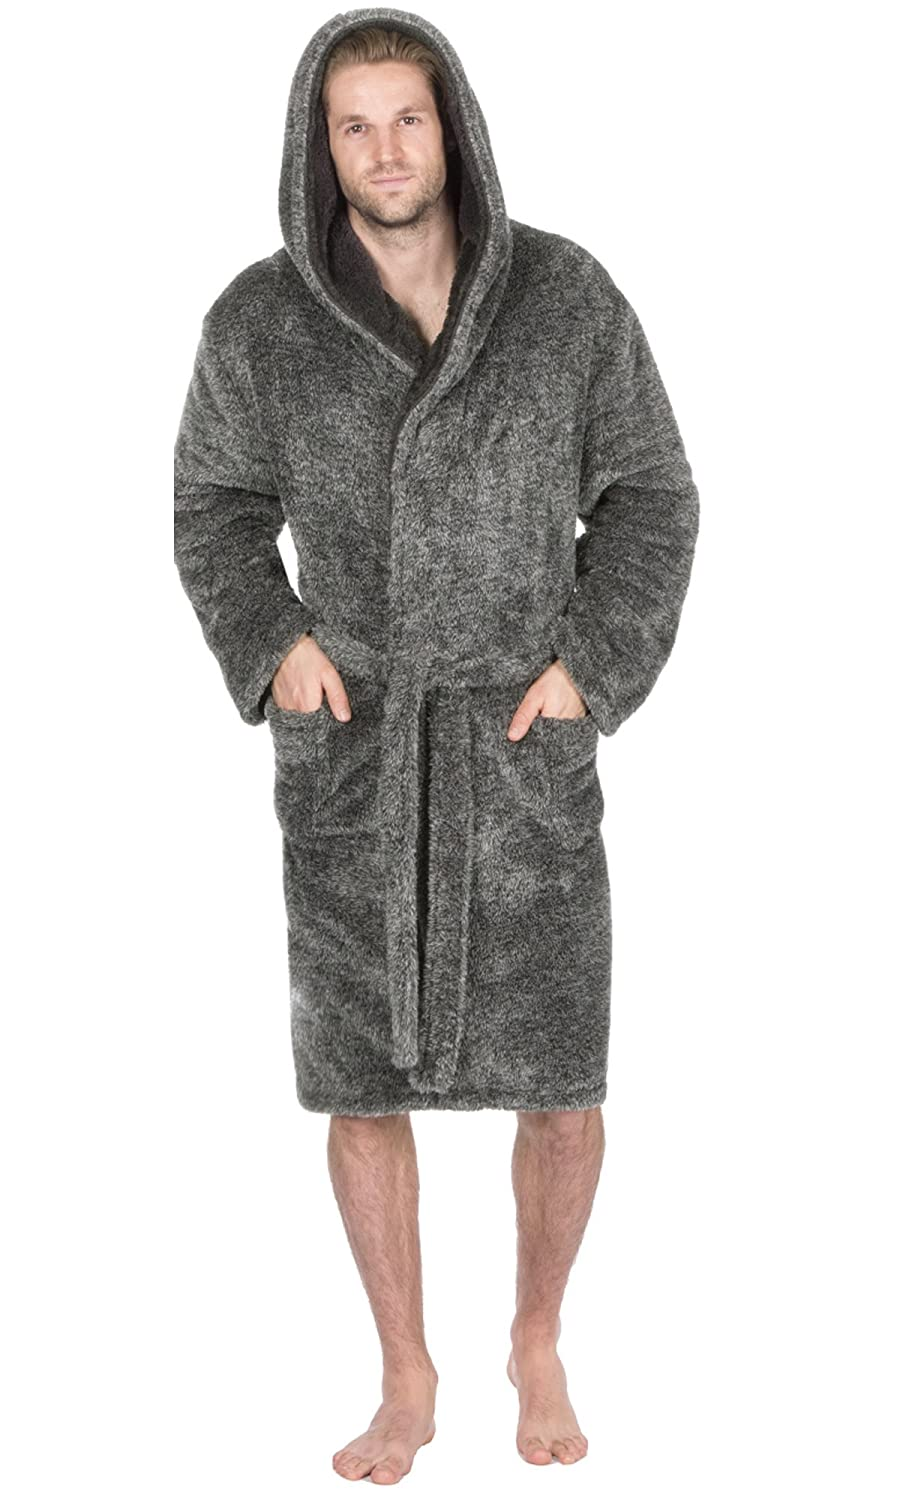 Mens Supersoft Housecoat Fleece Bath Robe Dressing Gown Gents Warm ...